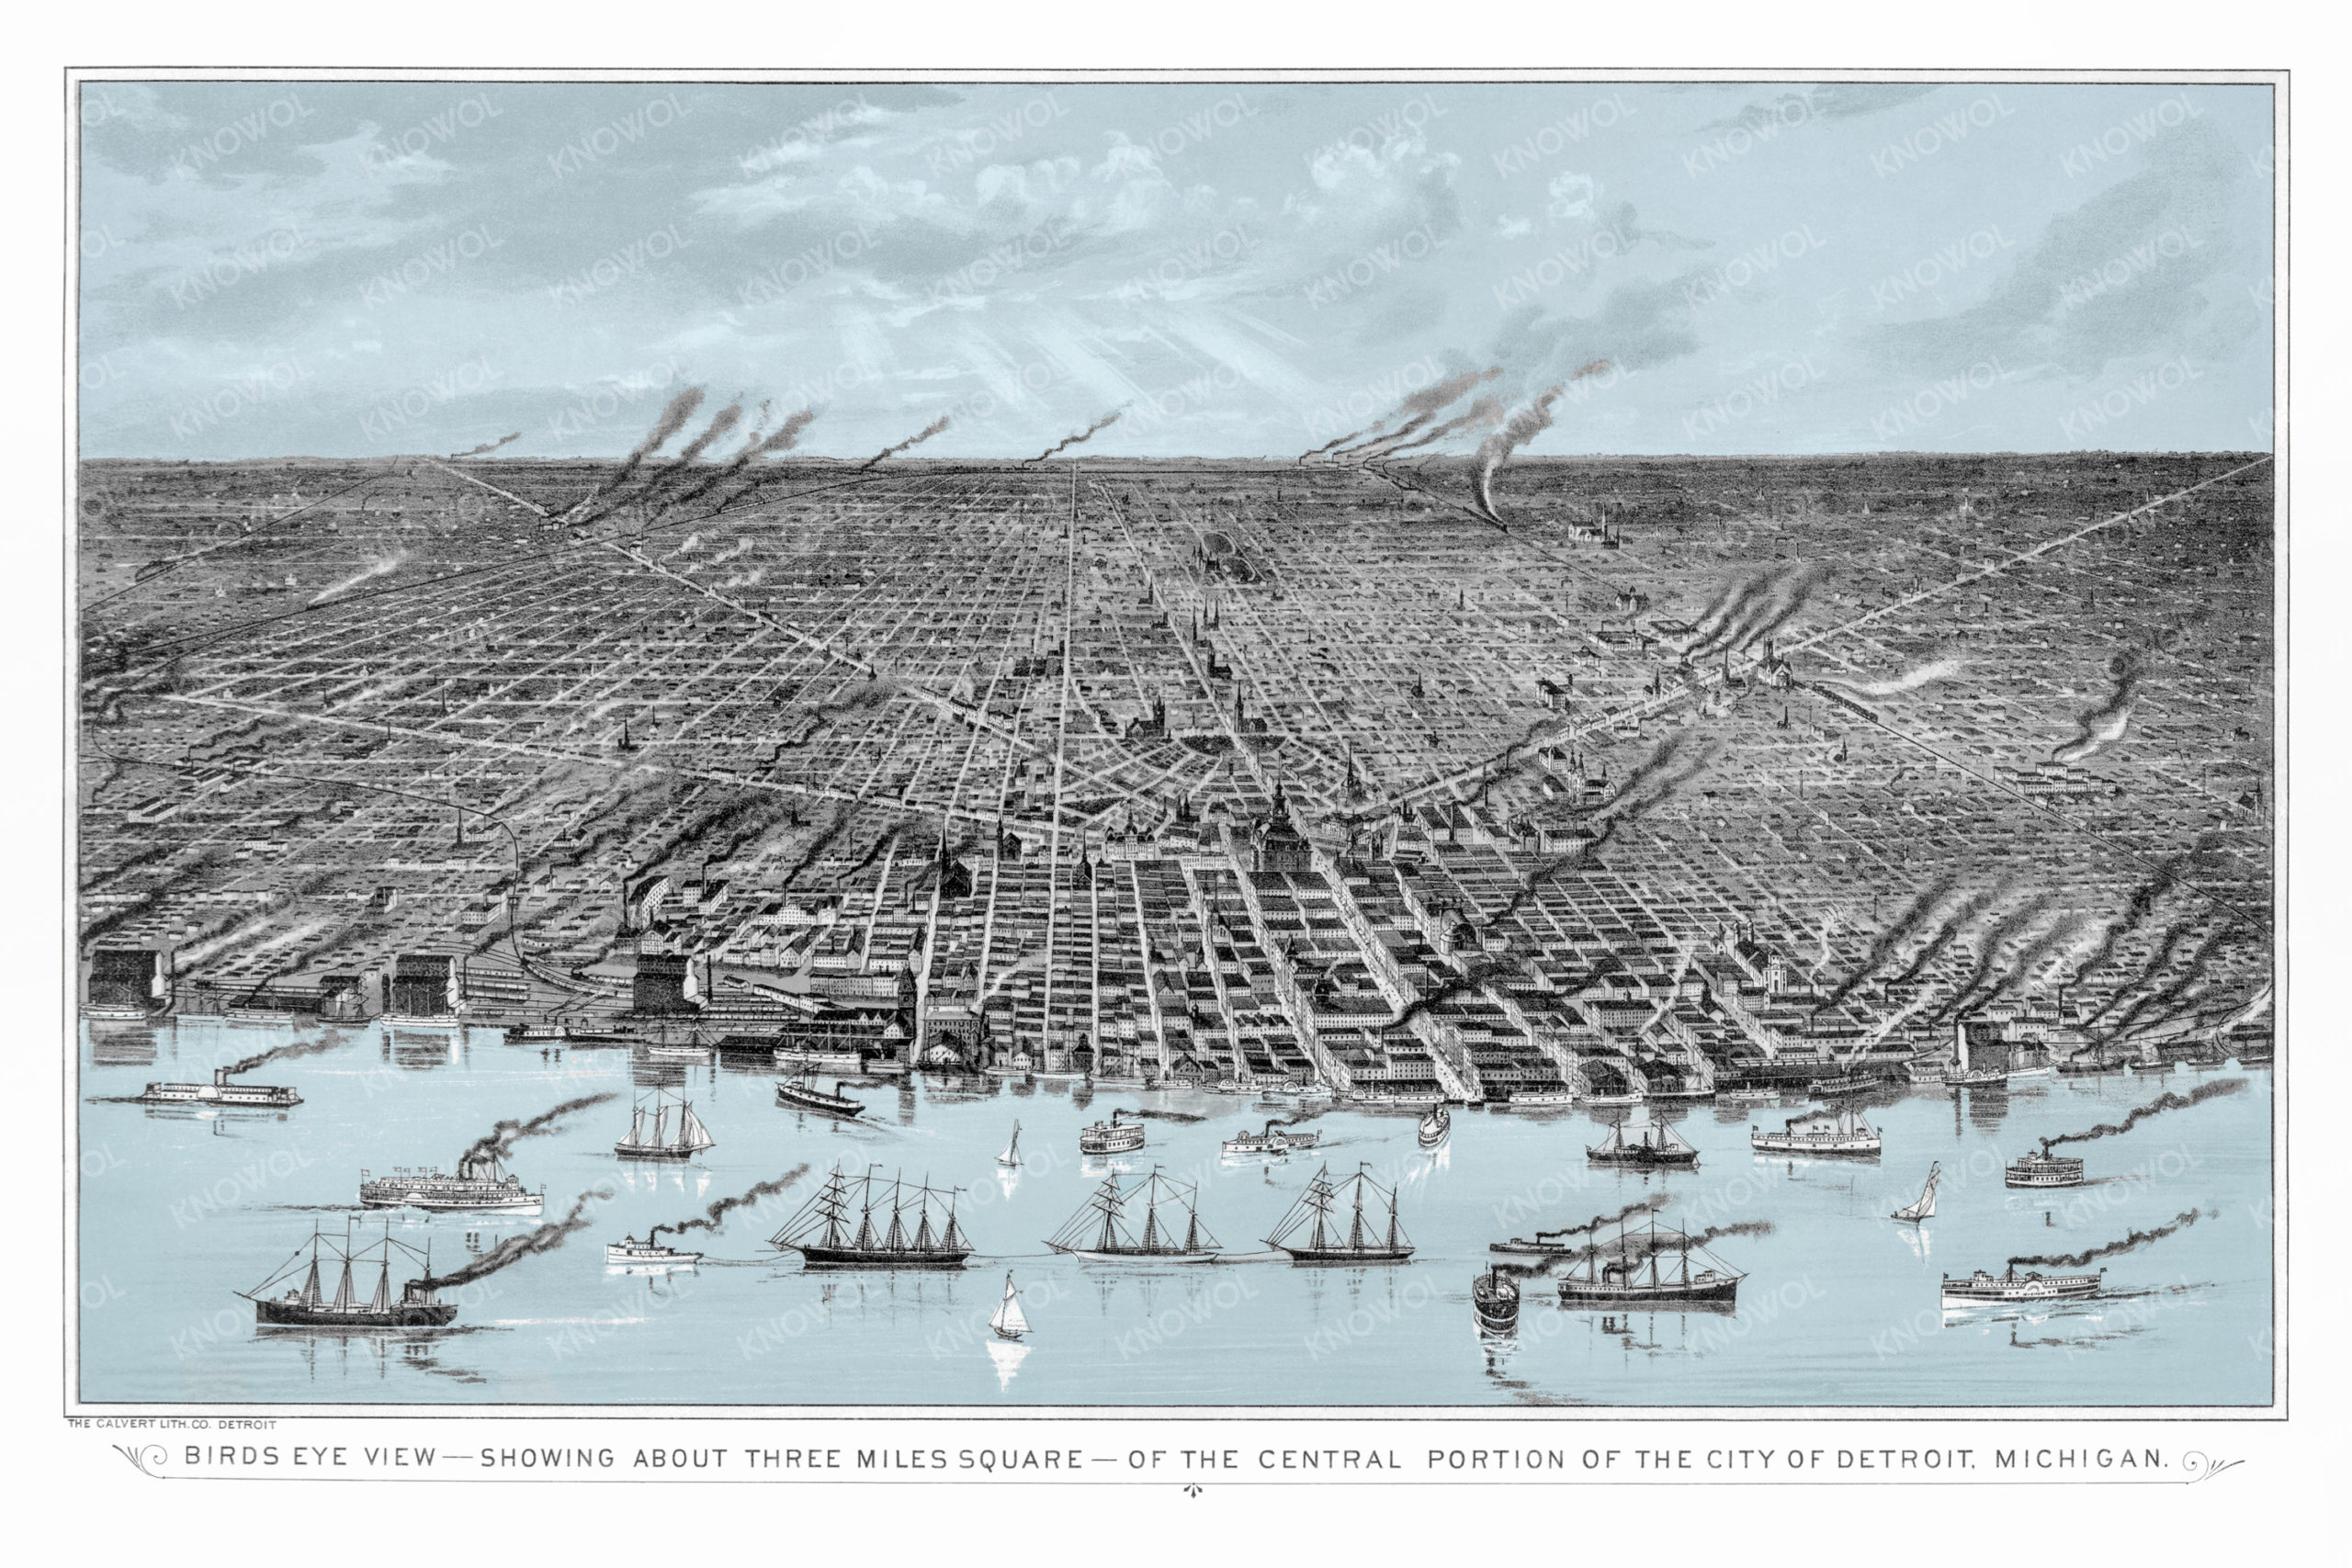 Old bird's eye view map showing Detroit Michigan in the year 1889. The ship is busy with boats and trains can be seen traversing the landscape. Smokestacks fill the air, and downtown is filled with houses. The sky and water are colored light blue, and the rest of the map is composed of shades of gray.